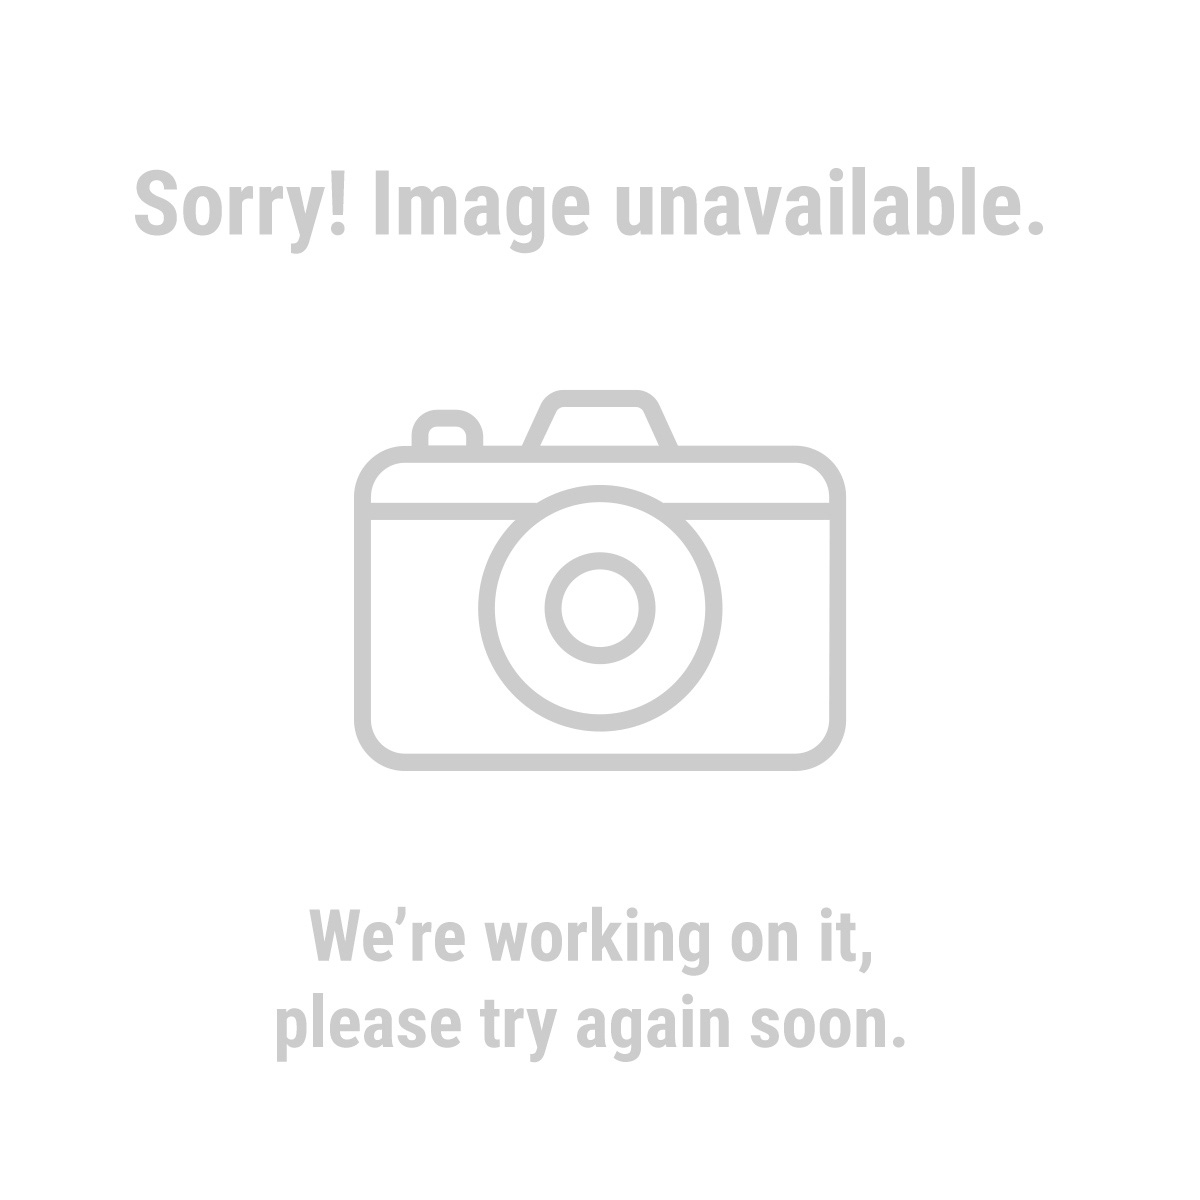 Warrior® 60231 5 Piece 4-1/2 in. 36 Grit Resin Fiber Sanding Discs